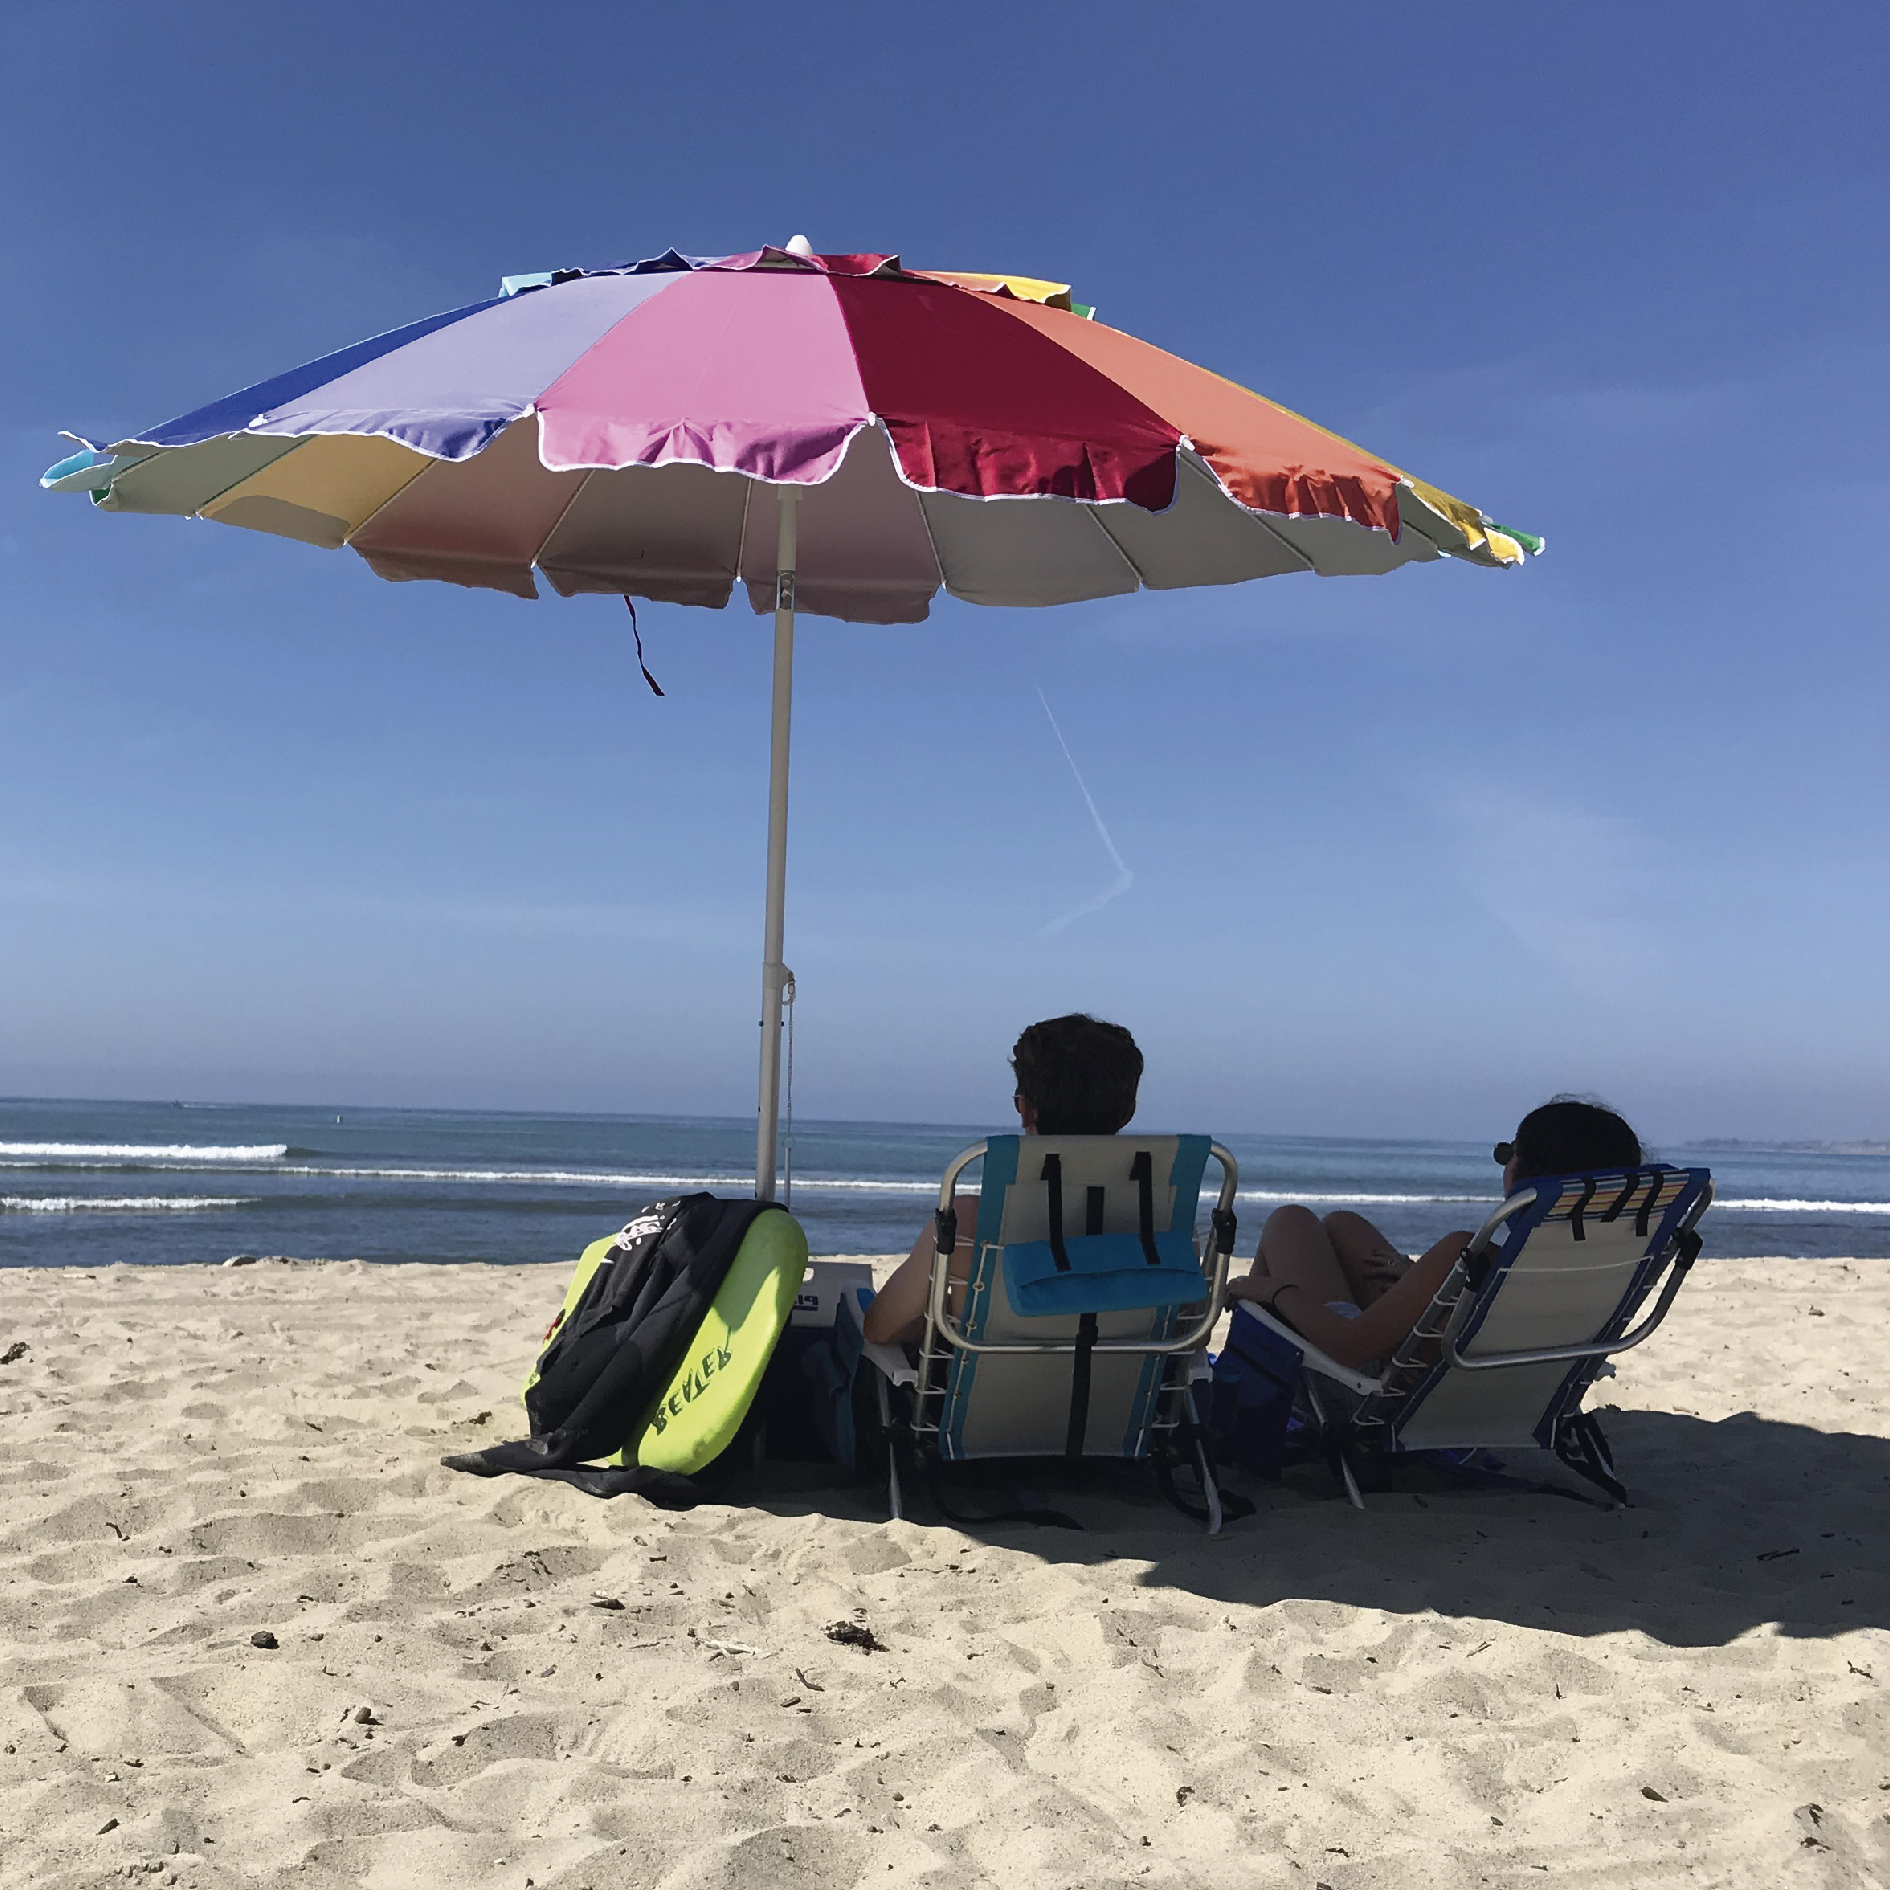 Leasure Fiberglass Portable Beach Umbrellas Throughout Latest Easygo 7Ft Rainbow Beach Umbrella Heavy Duty Design (View 8 of 20)